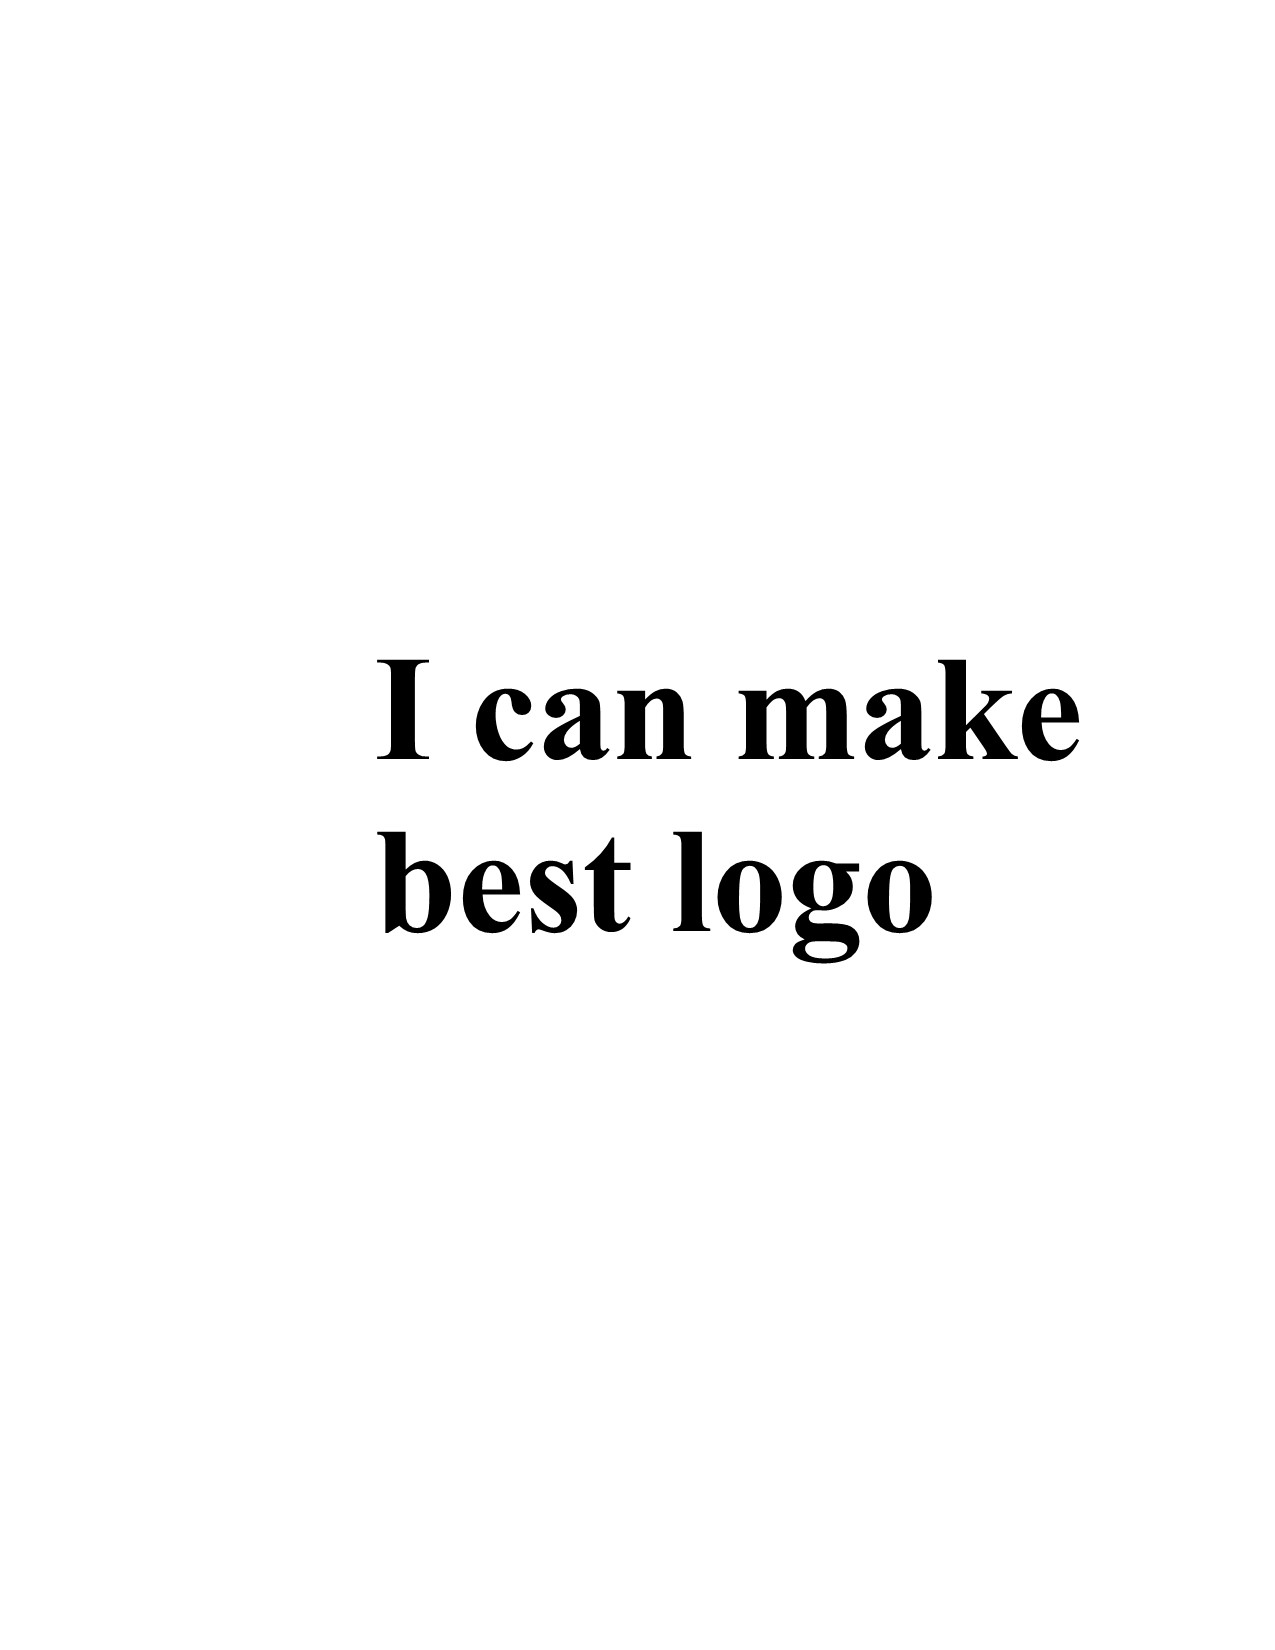 I can create great logo in short time